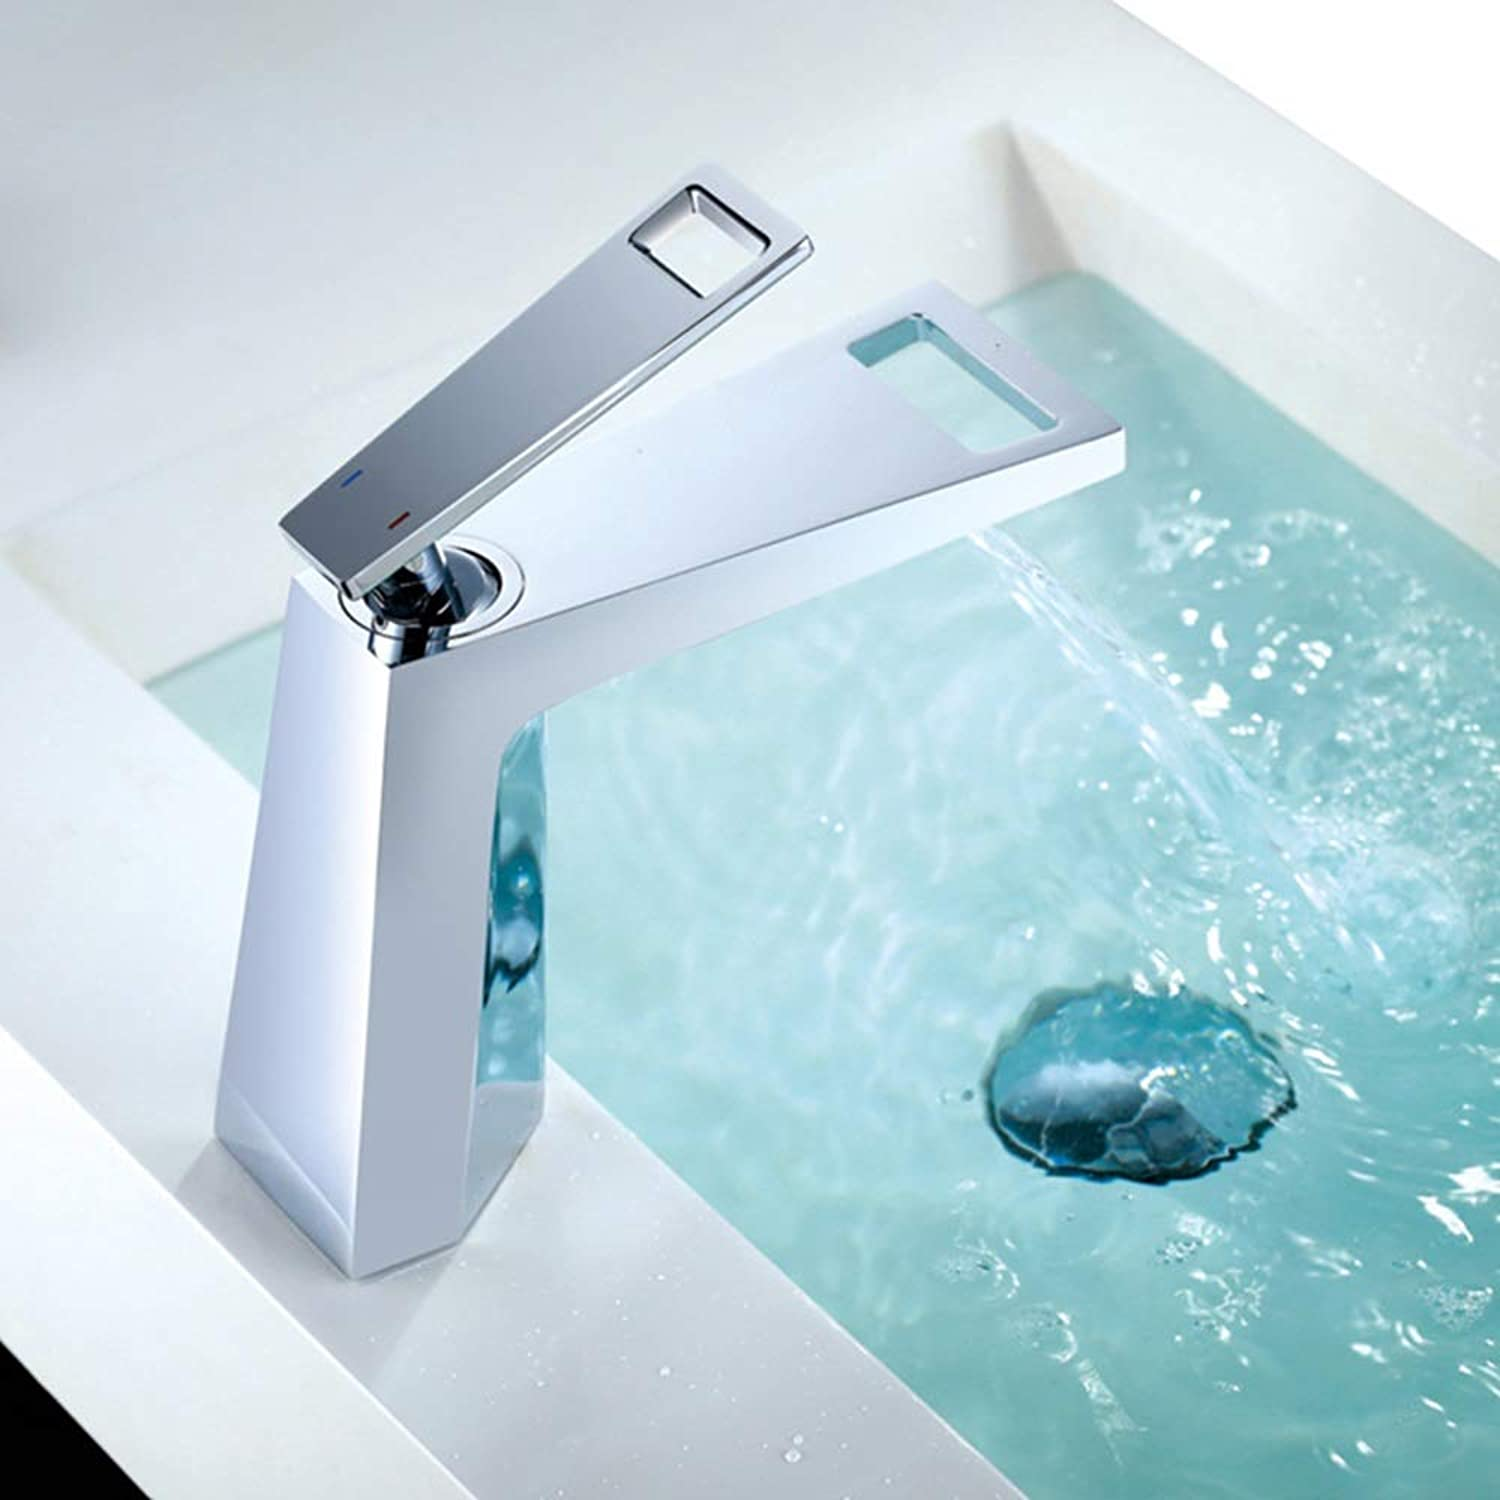 Durable New Square Basin Faucet stereoscopic Copper Hot And Cold Basin Faucet Hardware Bathroom Basin Faucet practical